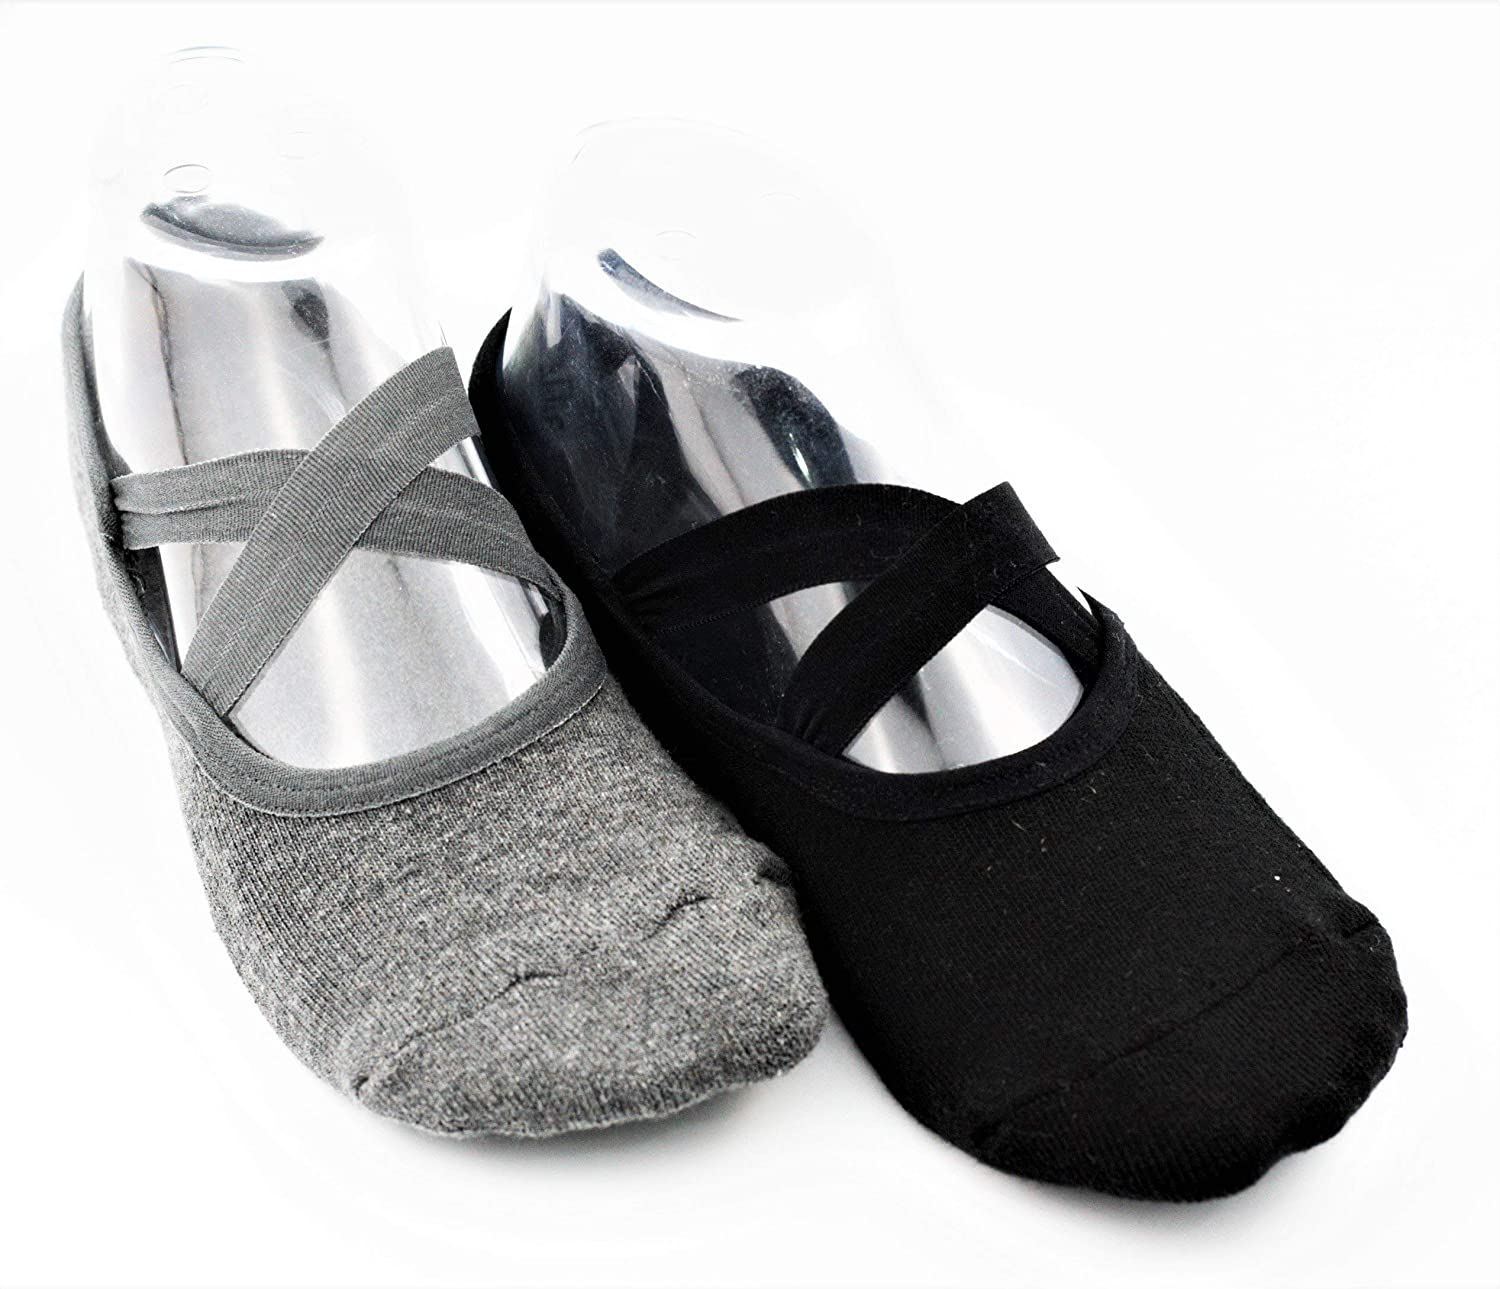 Cotton Yoga Socks Non Slip Ideal for Yoga Pilates Barre Fitness Sticky Toe Grip Socks Great as Slippers Too